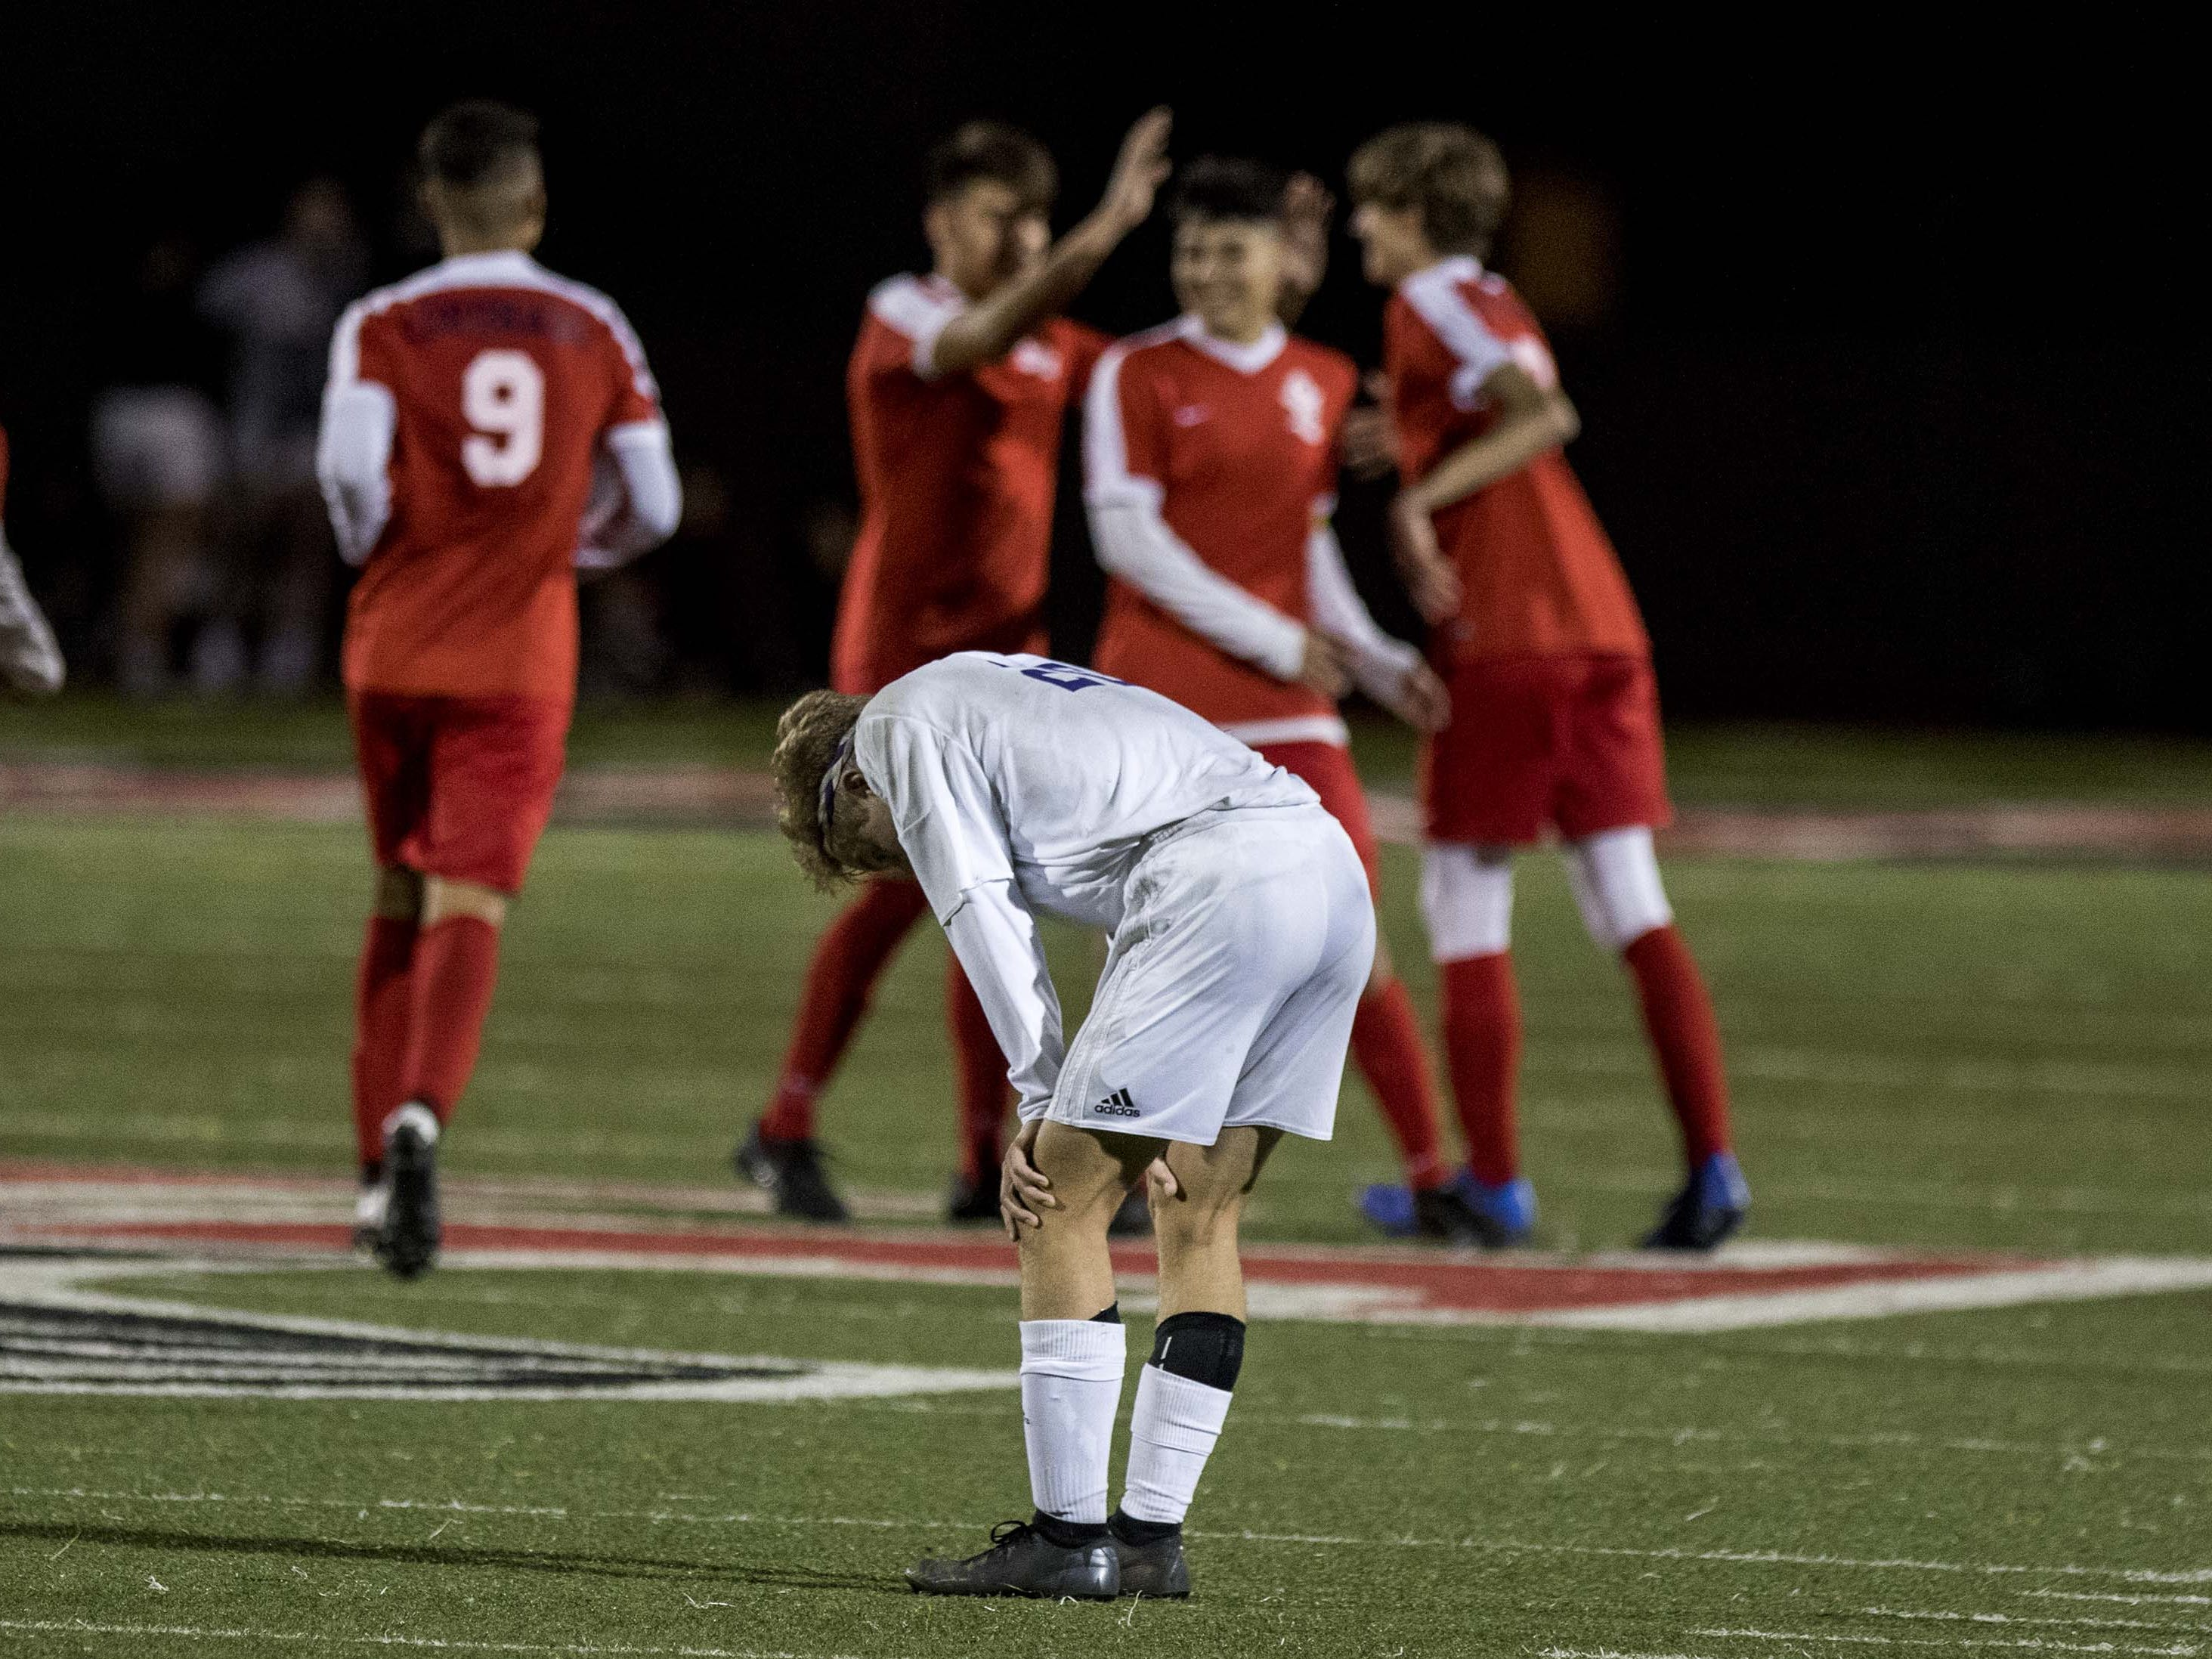 Coronado's players celebrate their fifth goal as Northwest Christian's Grant Gibson (20) appears to be dejected during the 3A State Championship game in Chandler, Friday, Feb .15,  2019.